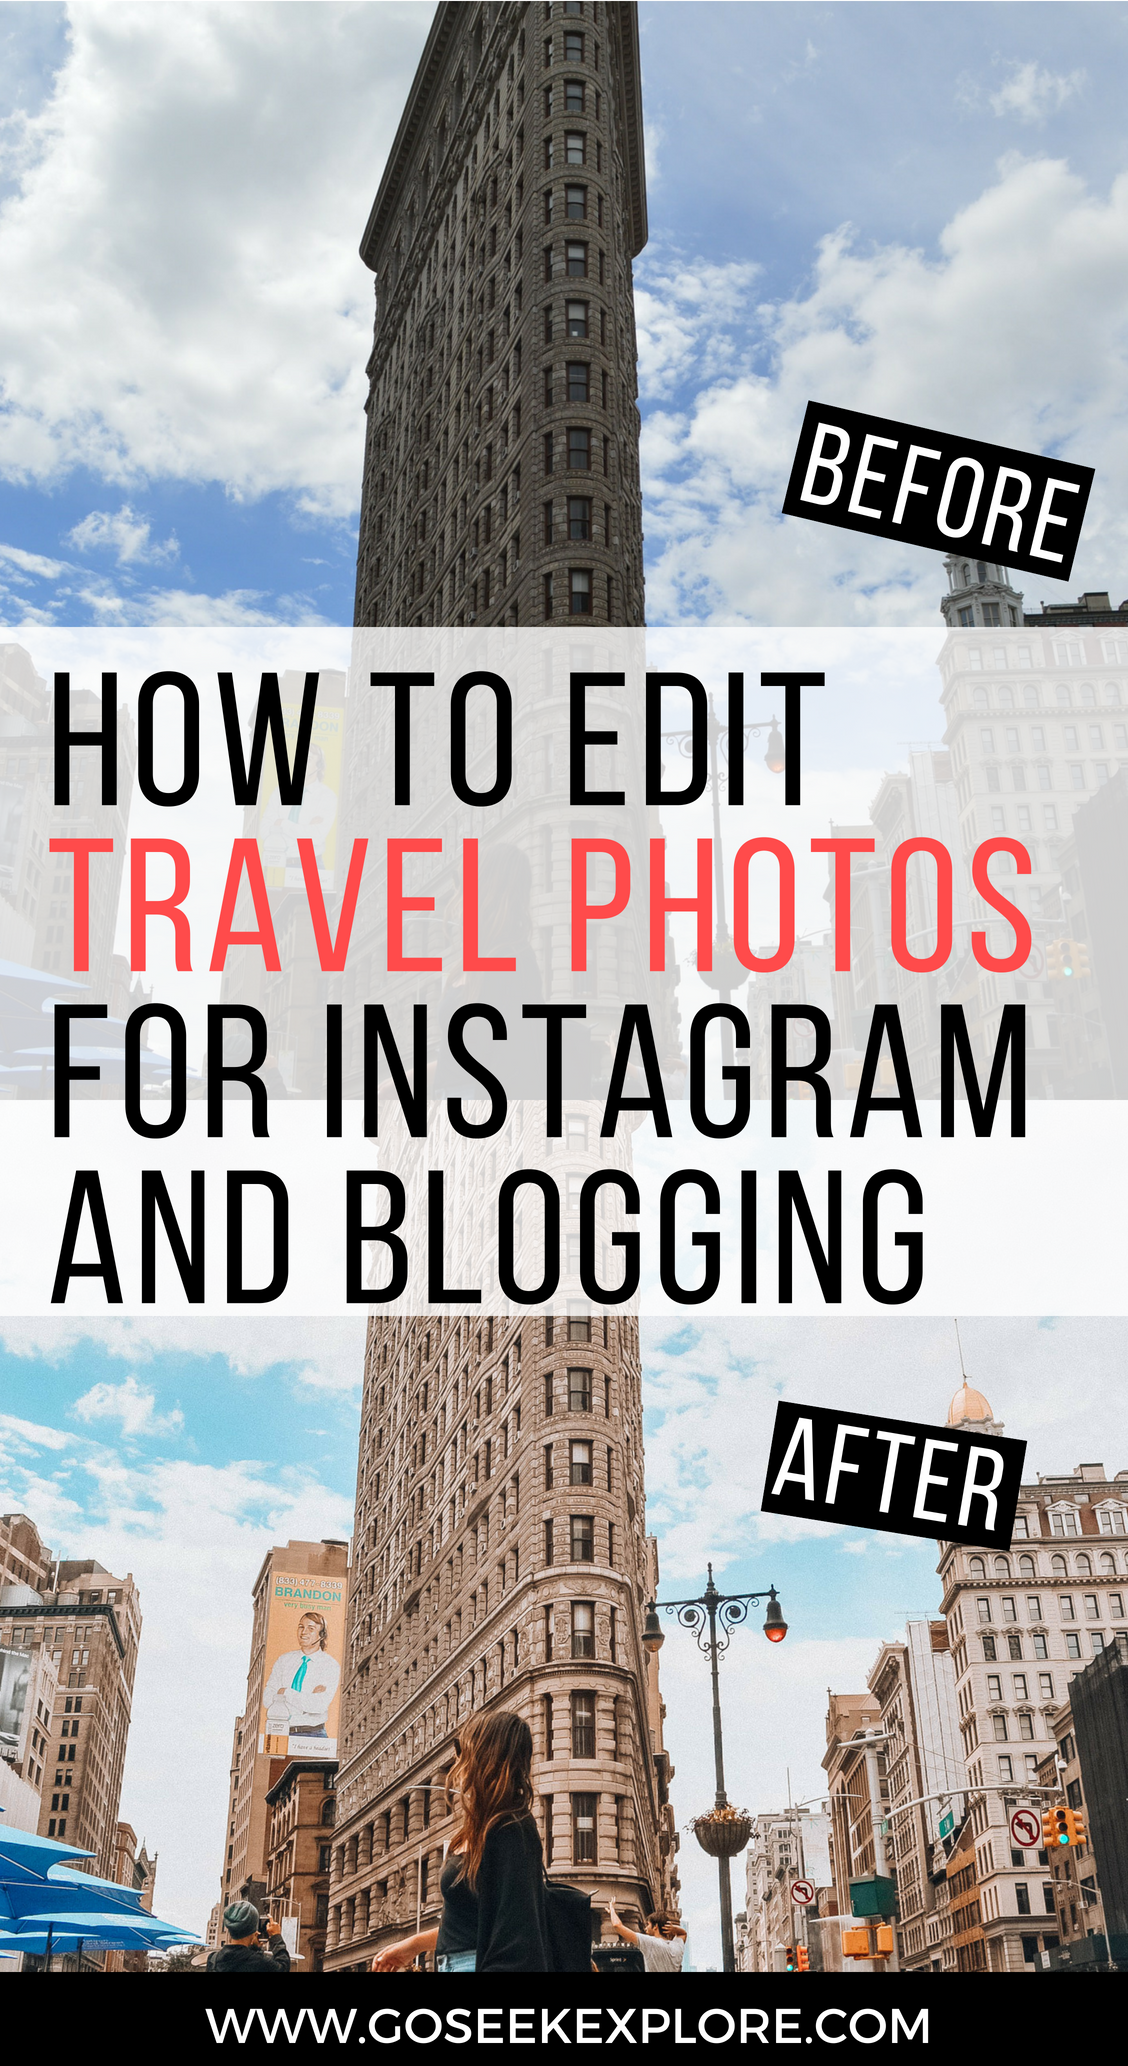 How to Edit Travel Photos for Instagram and Blogging! Great tips and apps to use; best free mobile apps for photo editing. // goseekexplore.com // How-edit-travel-photos-instagram-blogging